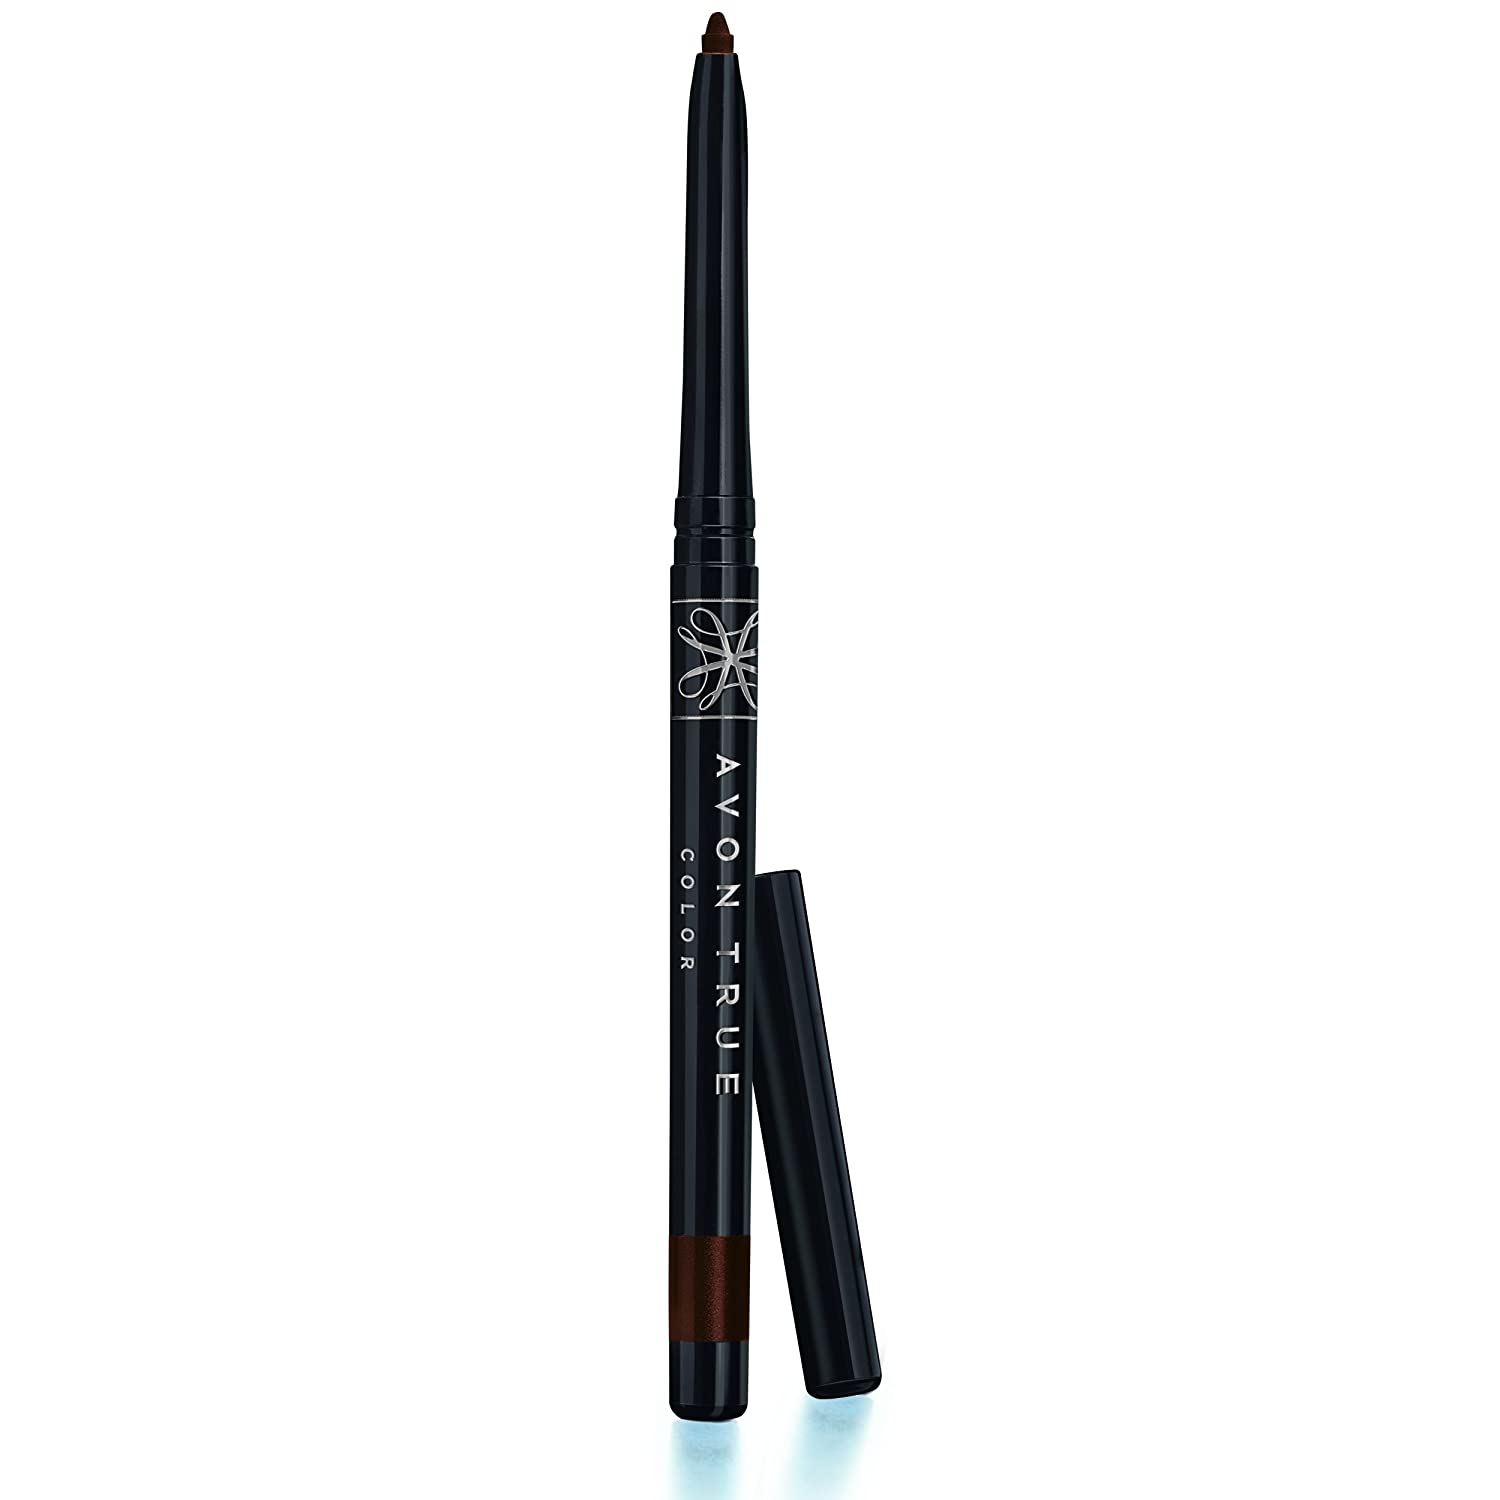 Avon True Color Glimmerstick Eyeliner